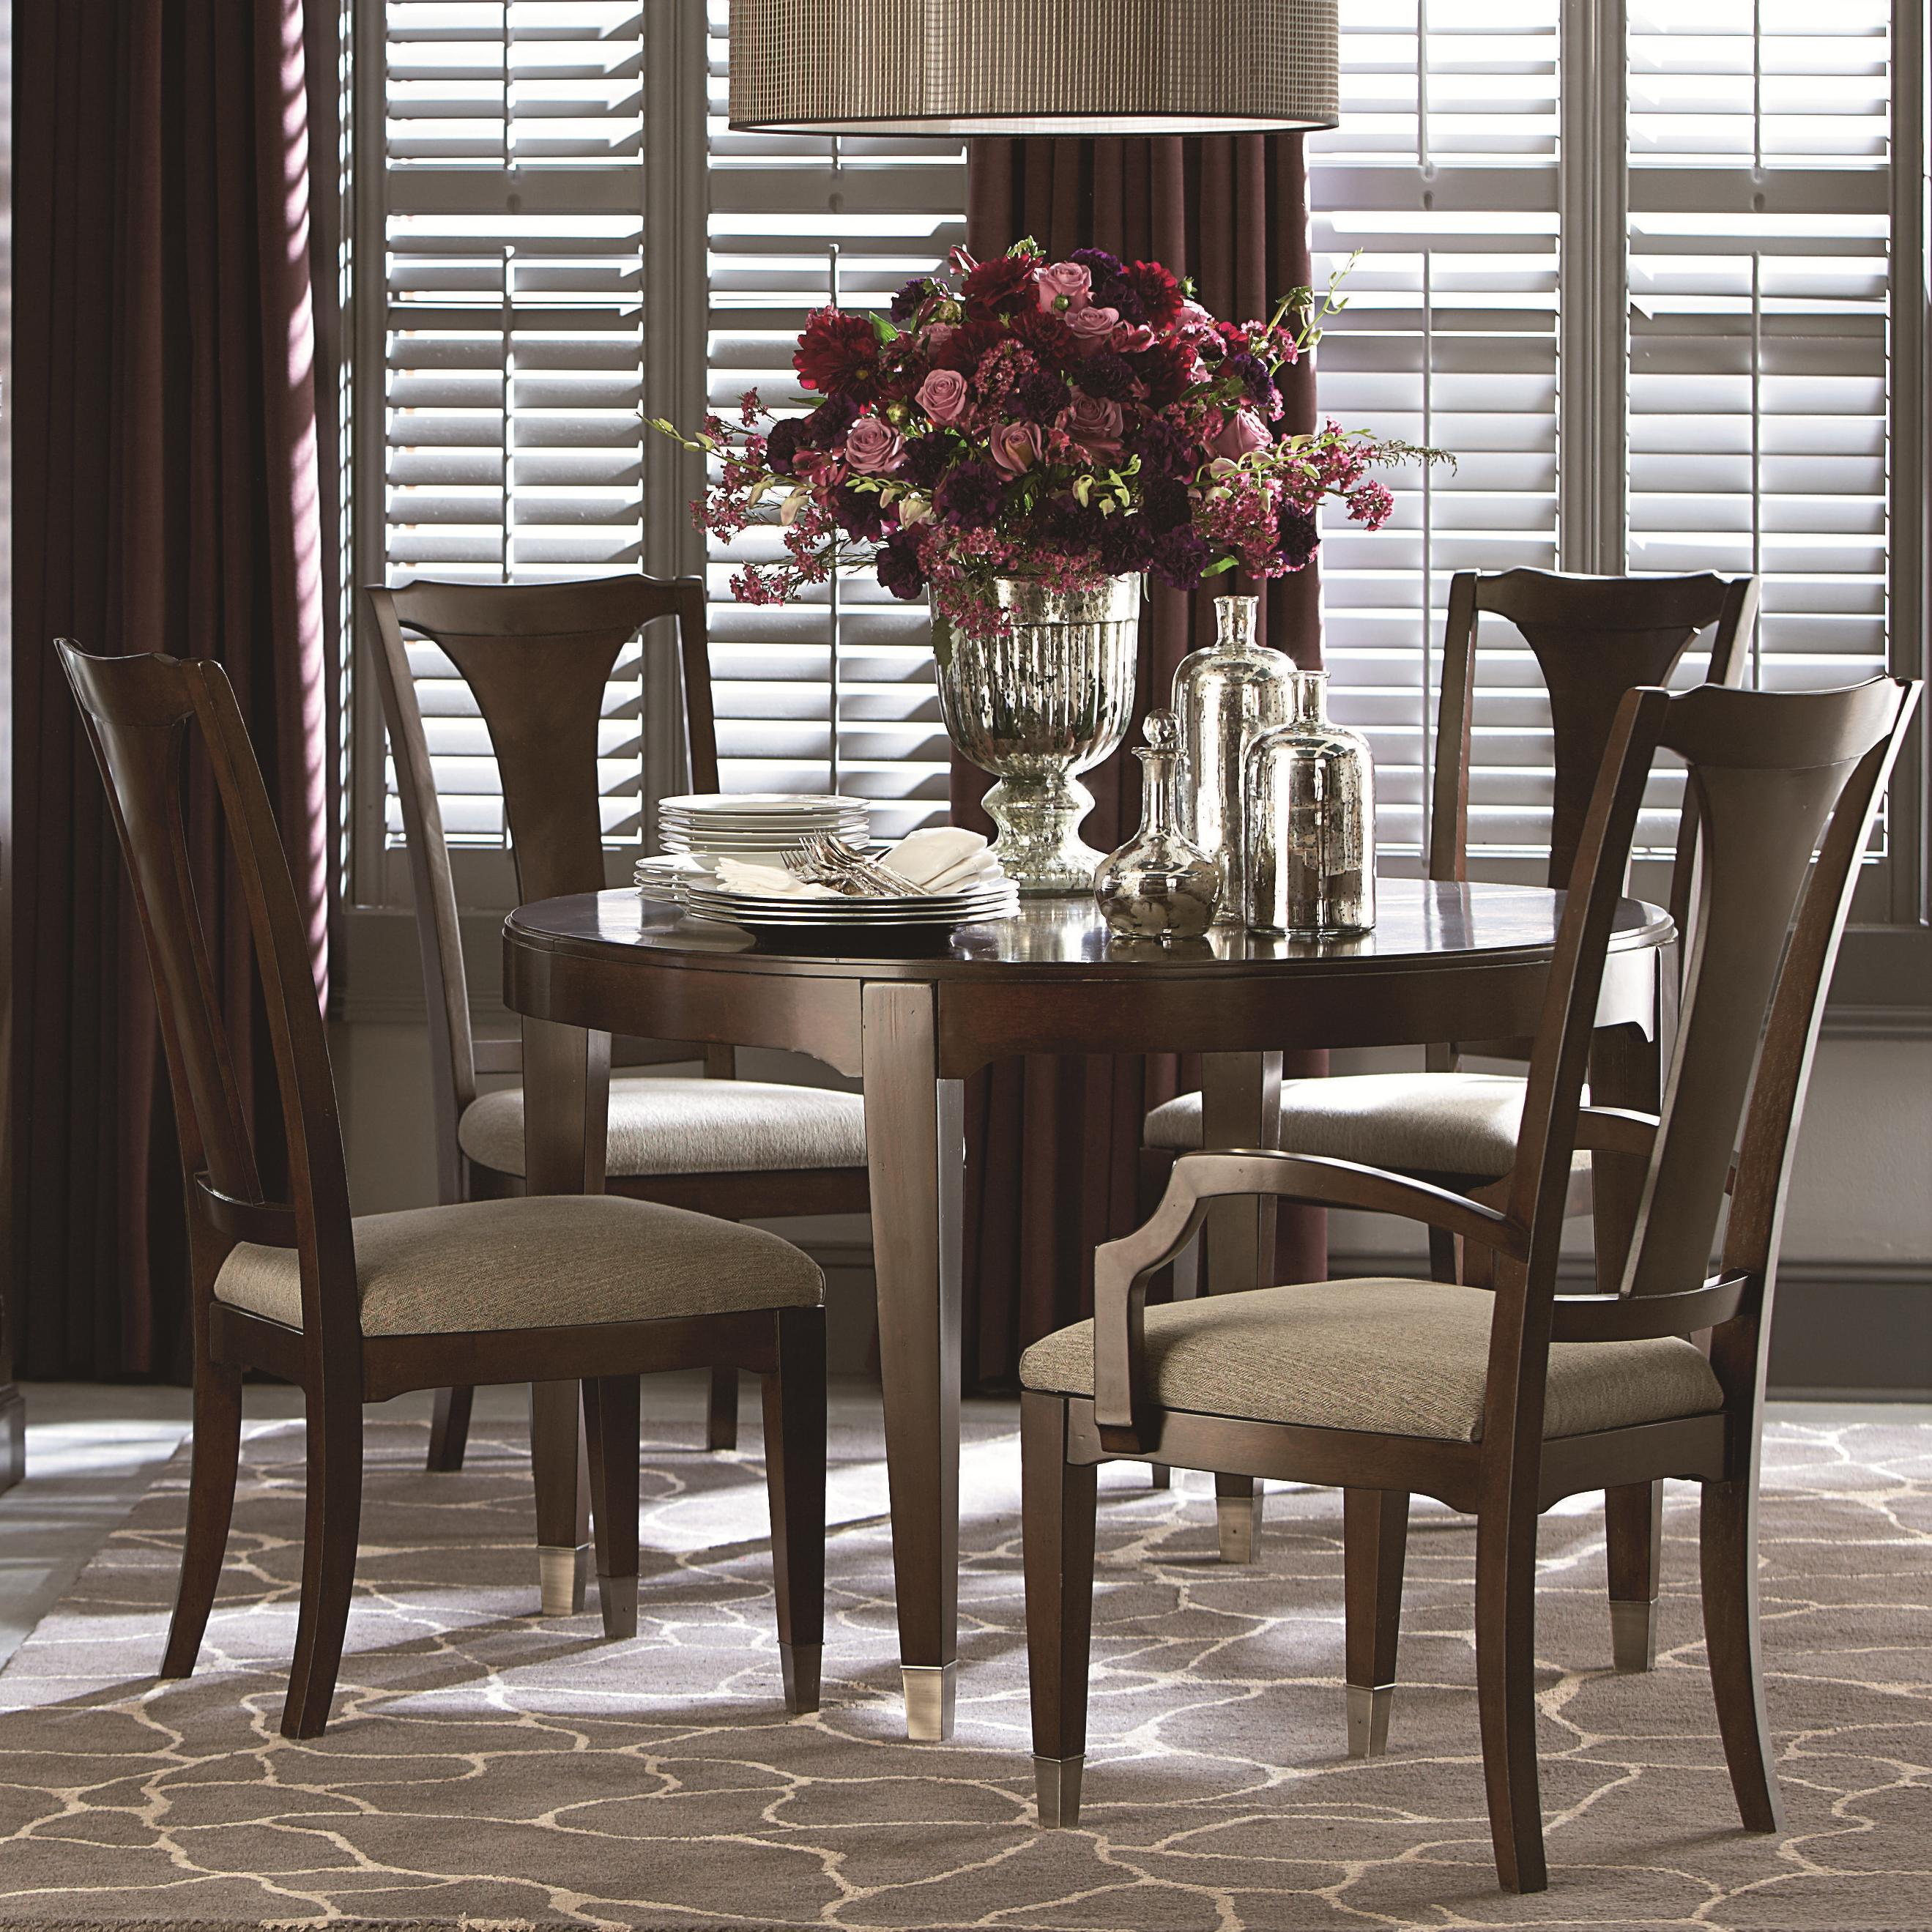 Cosmopolitan Transitional Five Piece Dining Set With Round Table By Bassett